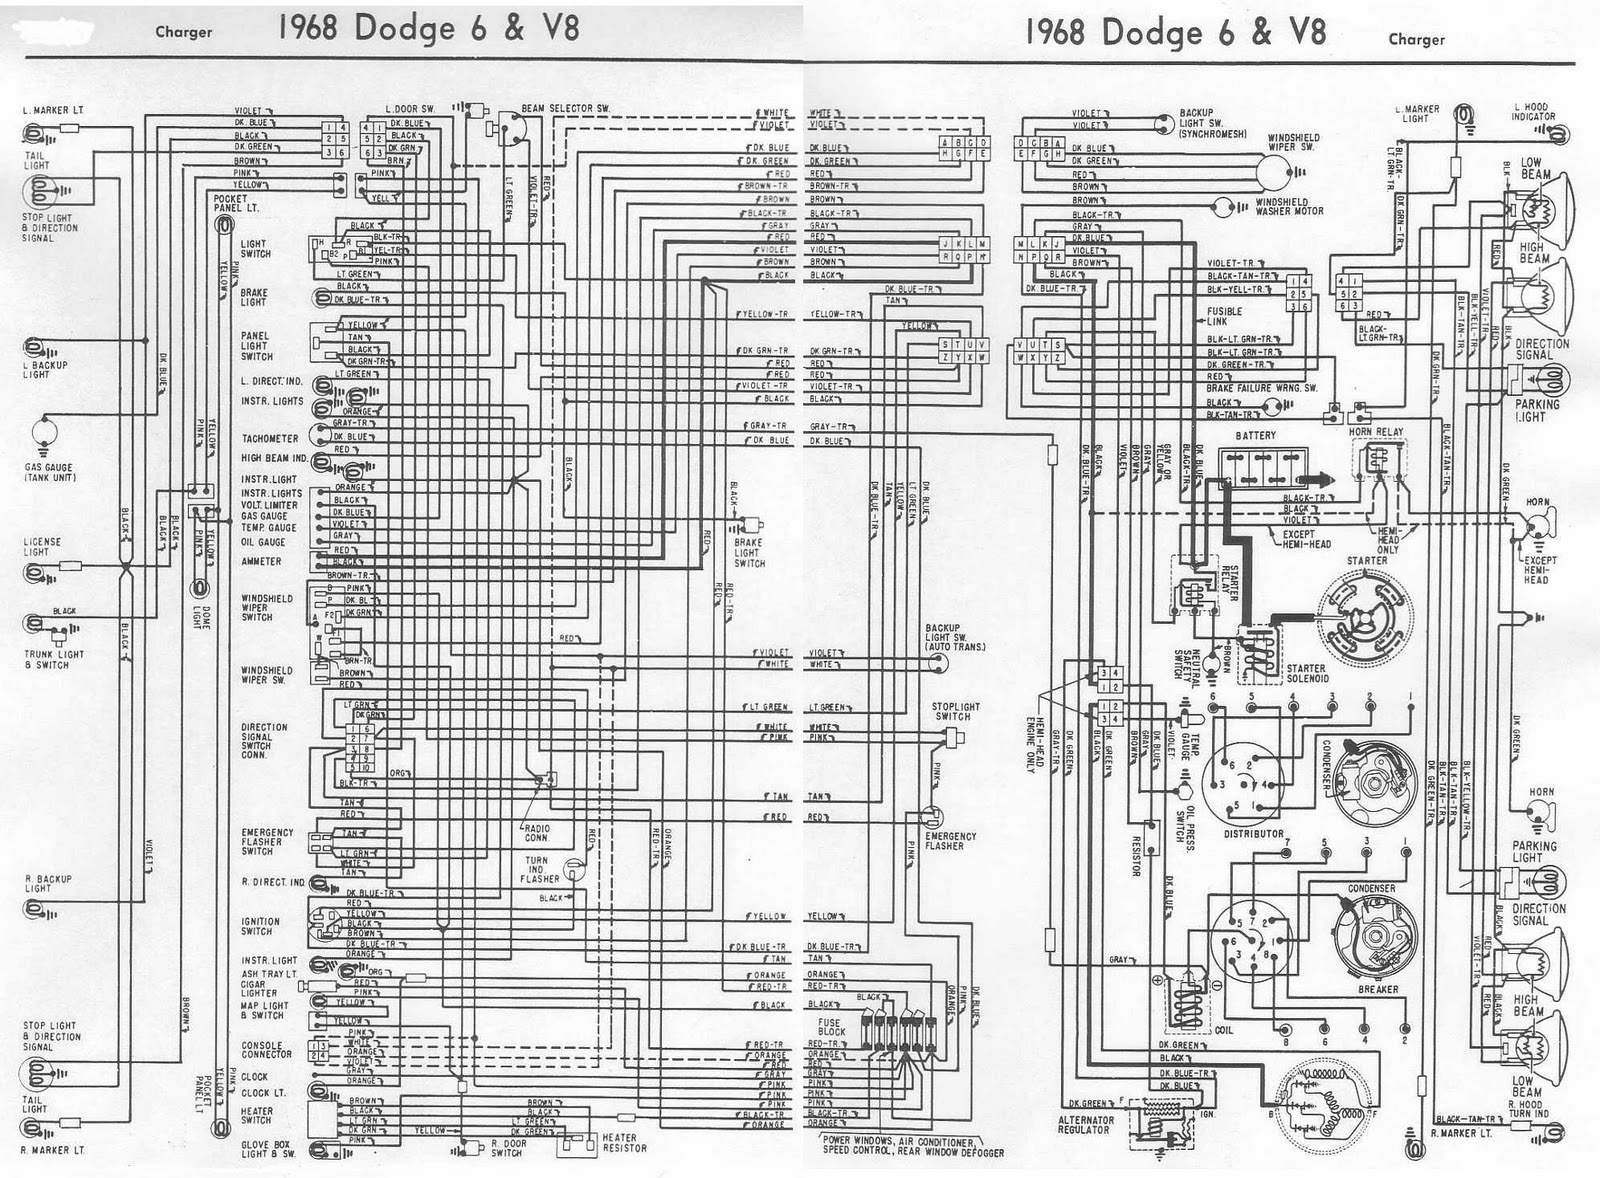 Dodge+Charger+1968+6+and+V8+Complete+Electrical+Wiring+Diagram dodge charger wiring diagram dodge wiring diagrams instruction 1970 dodge coronet wiring diagram at aneh.co